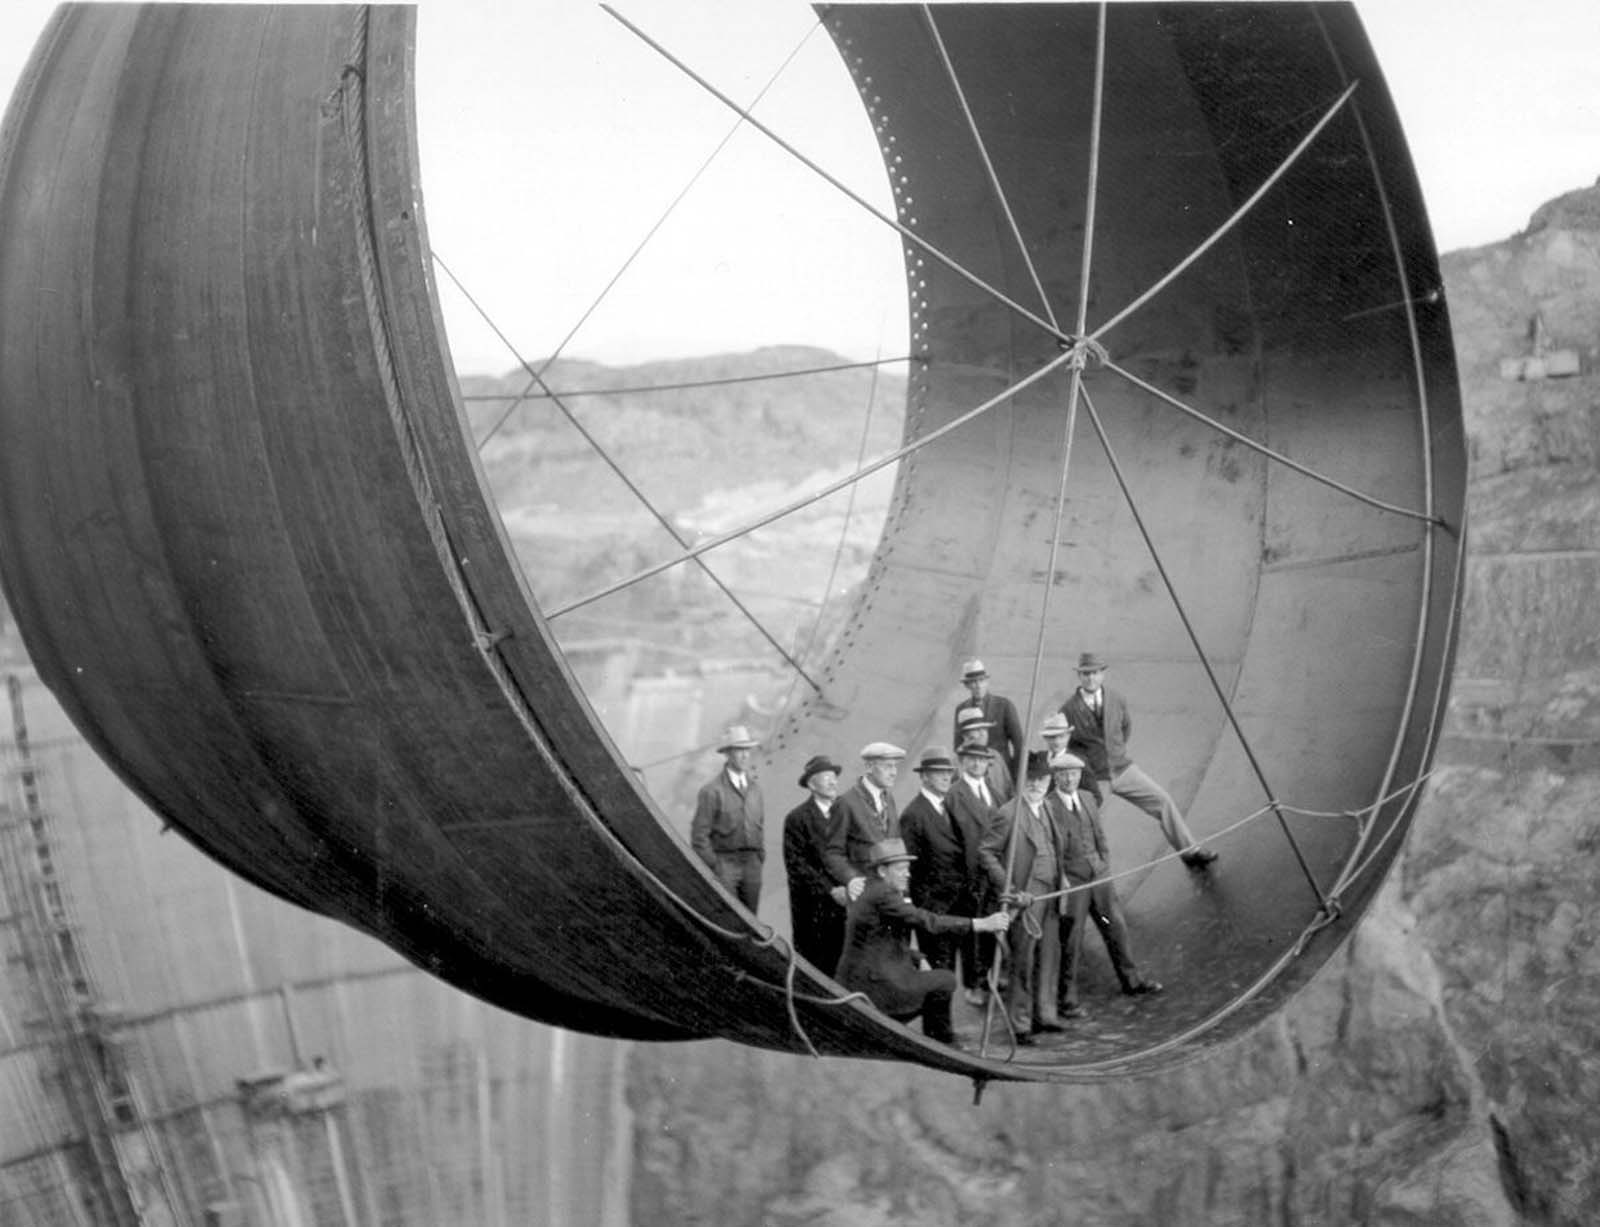 Officials ride in one of the penstock pipes of the soon-to-be-completed Hoover Dam. 1935.